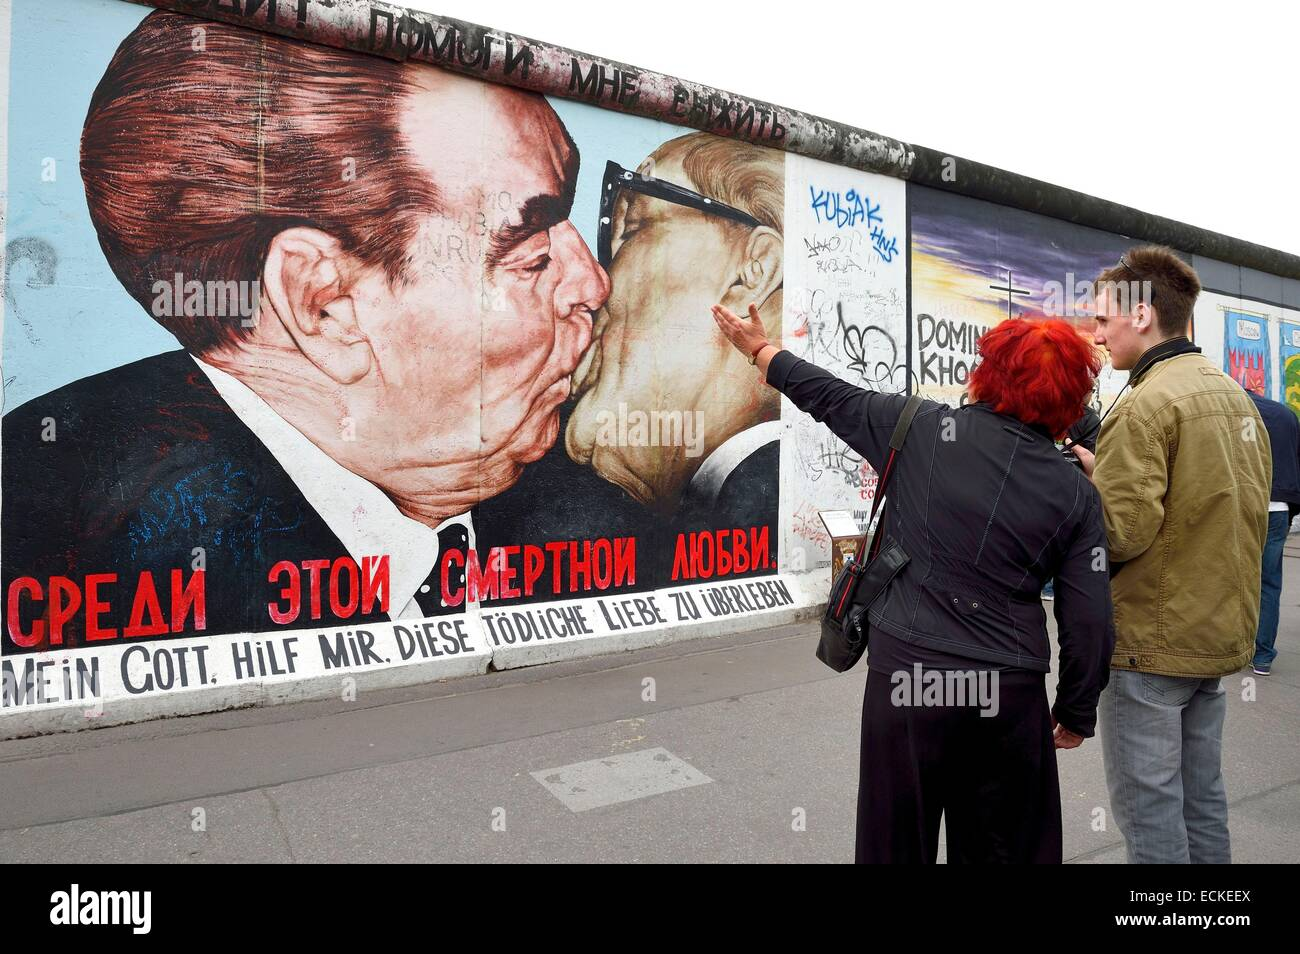 Germany, Berlin, Friedrichshain-Kreuzberg, East Side Gallery, The Wall, work dating from the 1990's, renovated - Stock Image